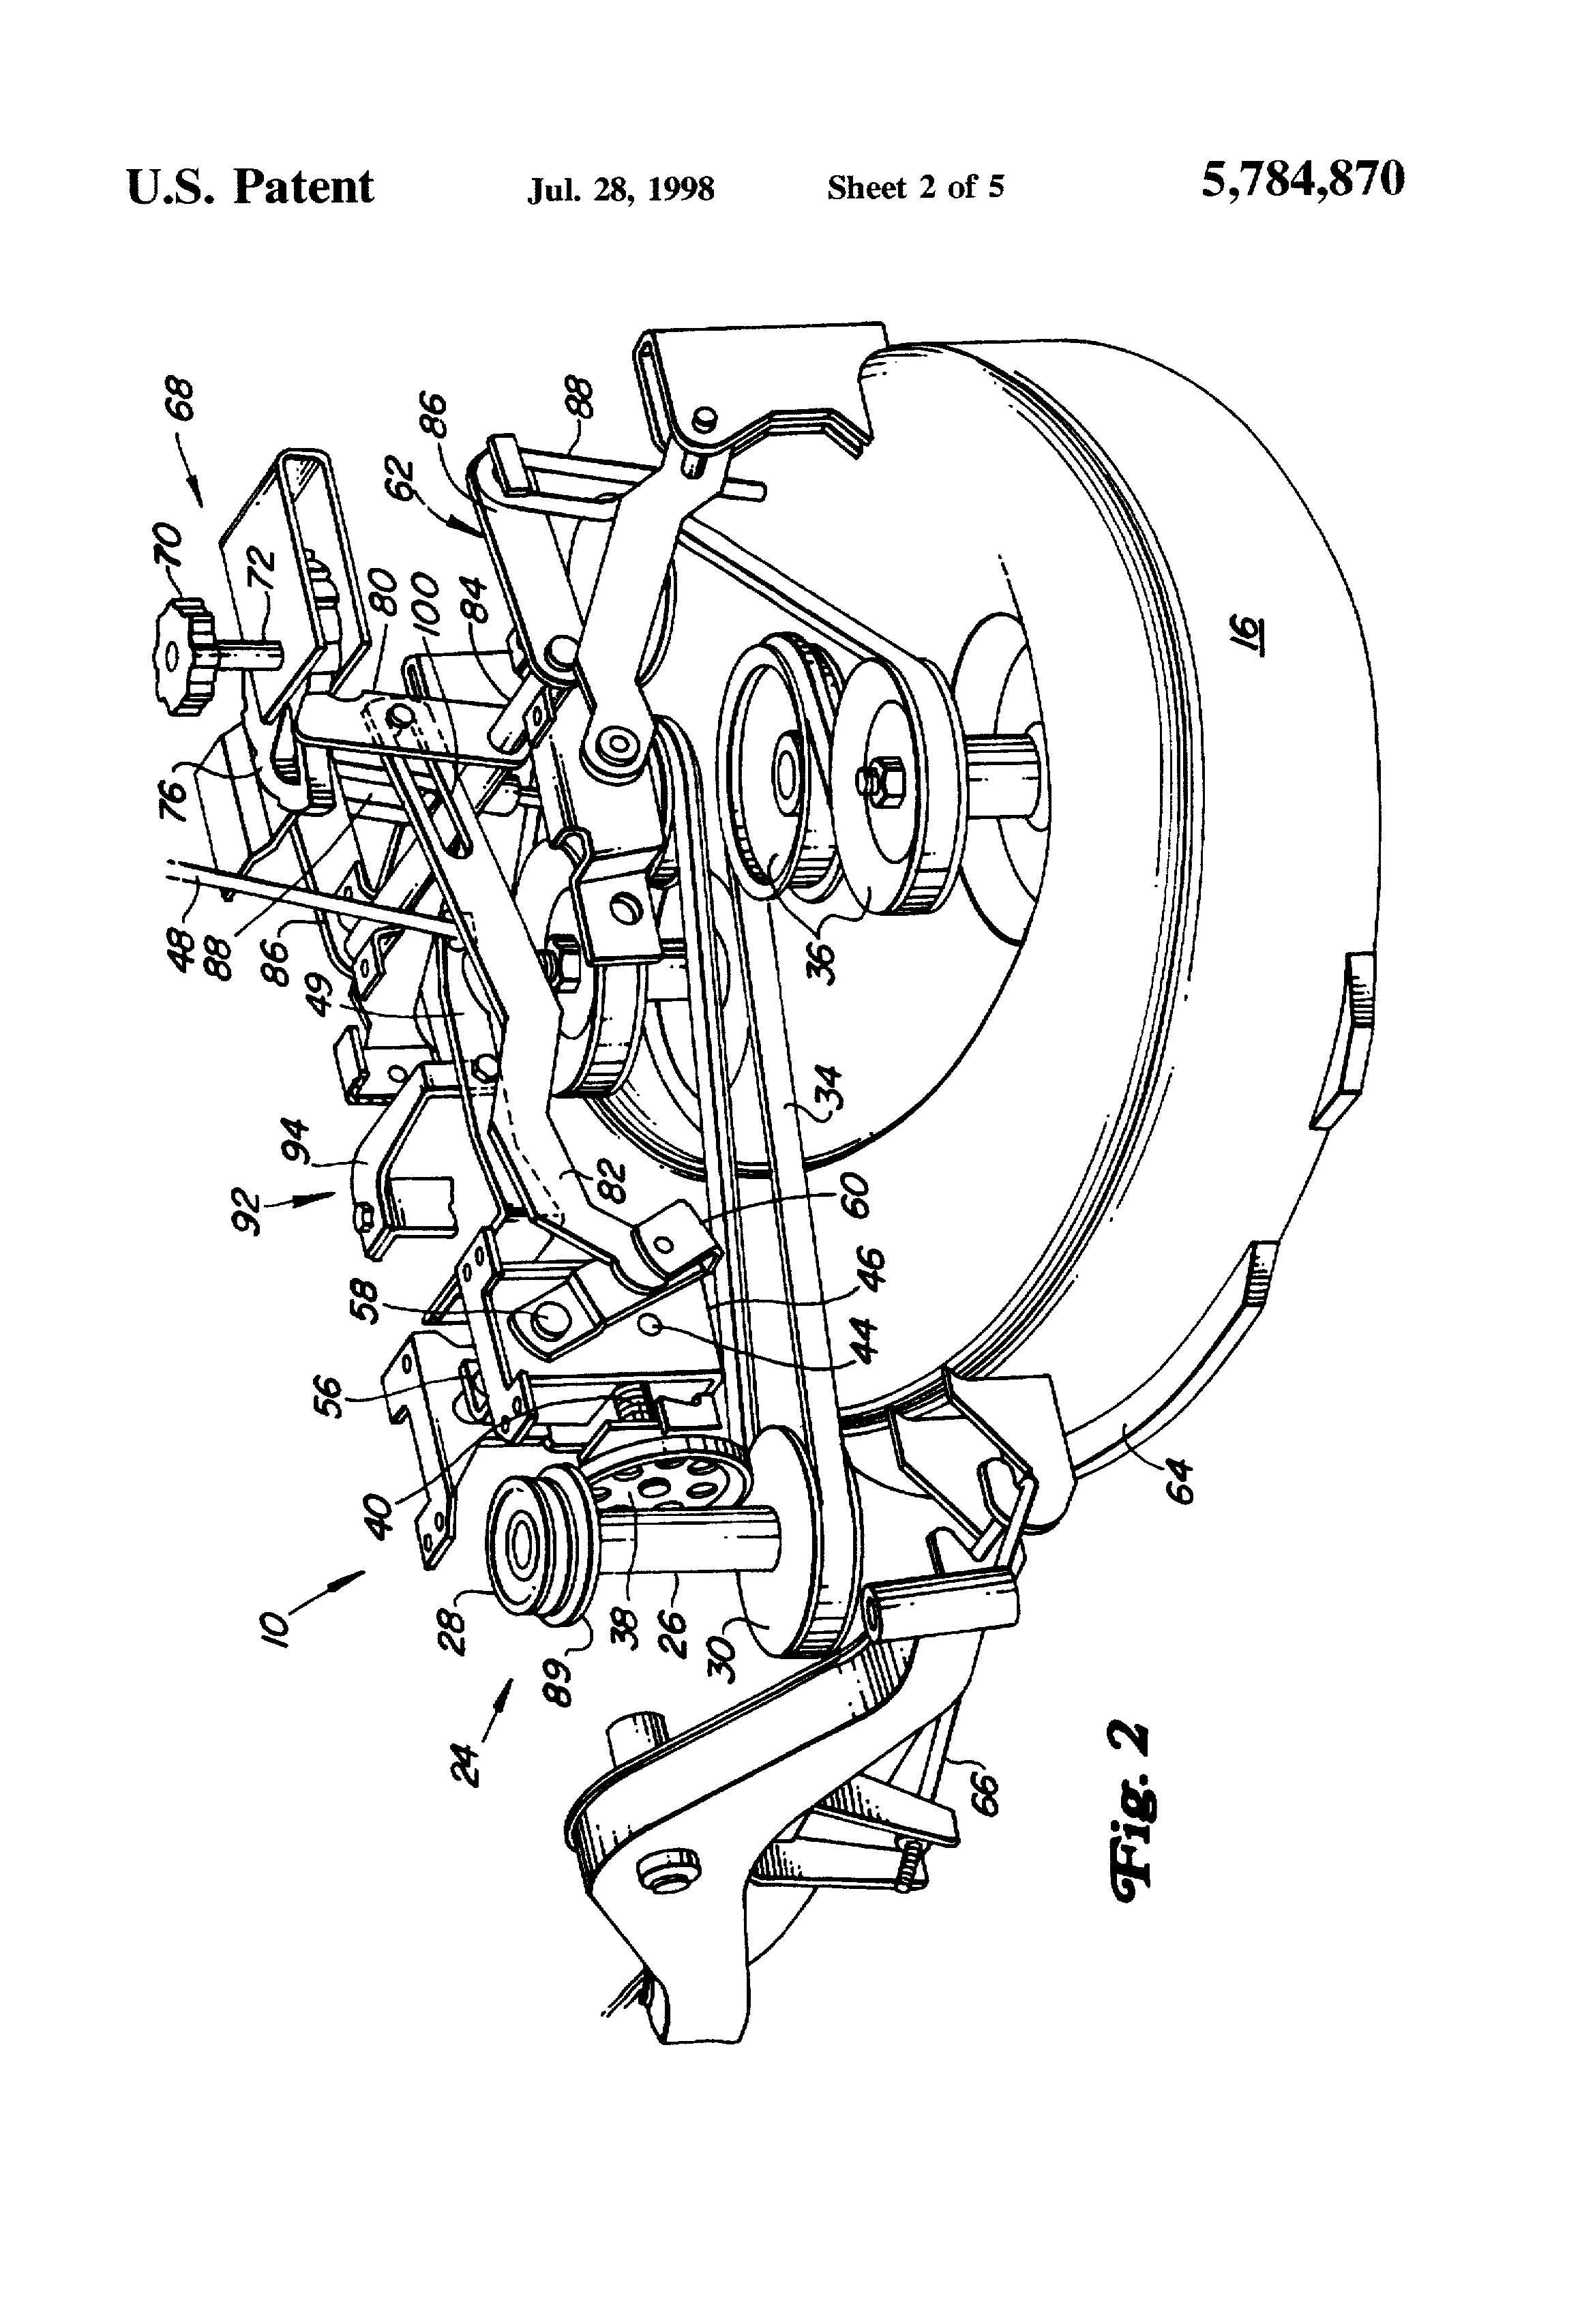 John Deere Lx188 Mower Deck Parts : Patent us power lift mechanism for mower deck